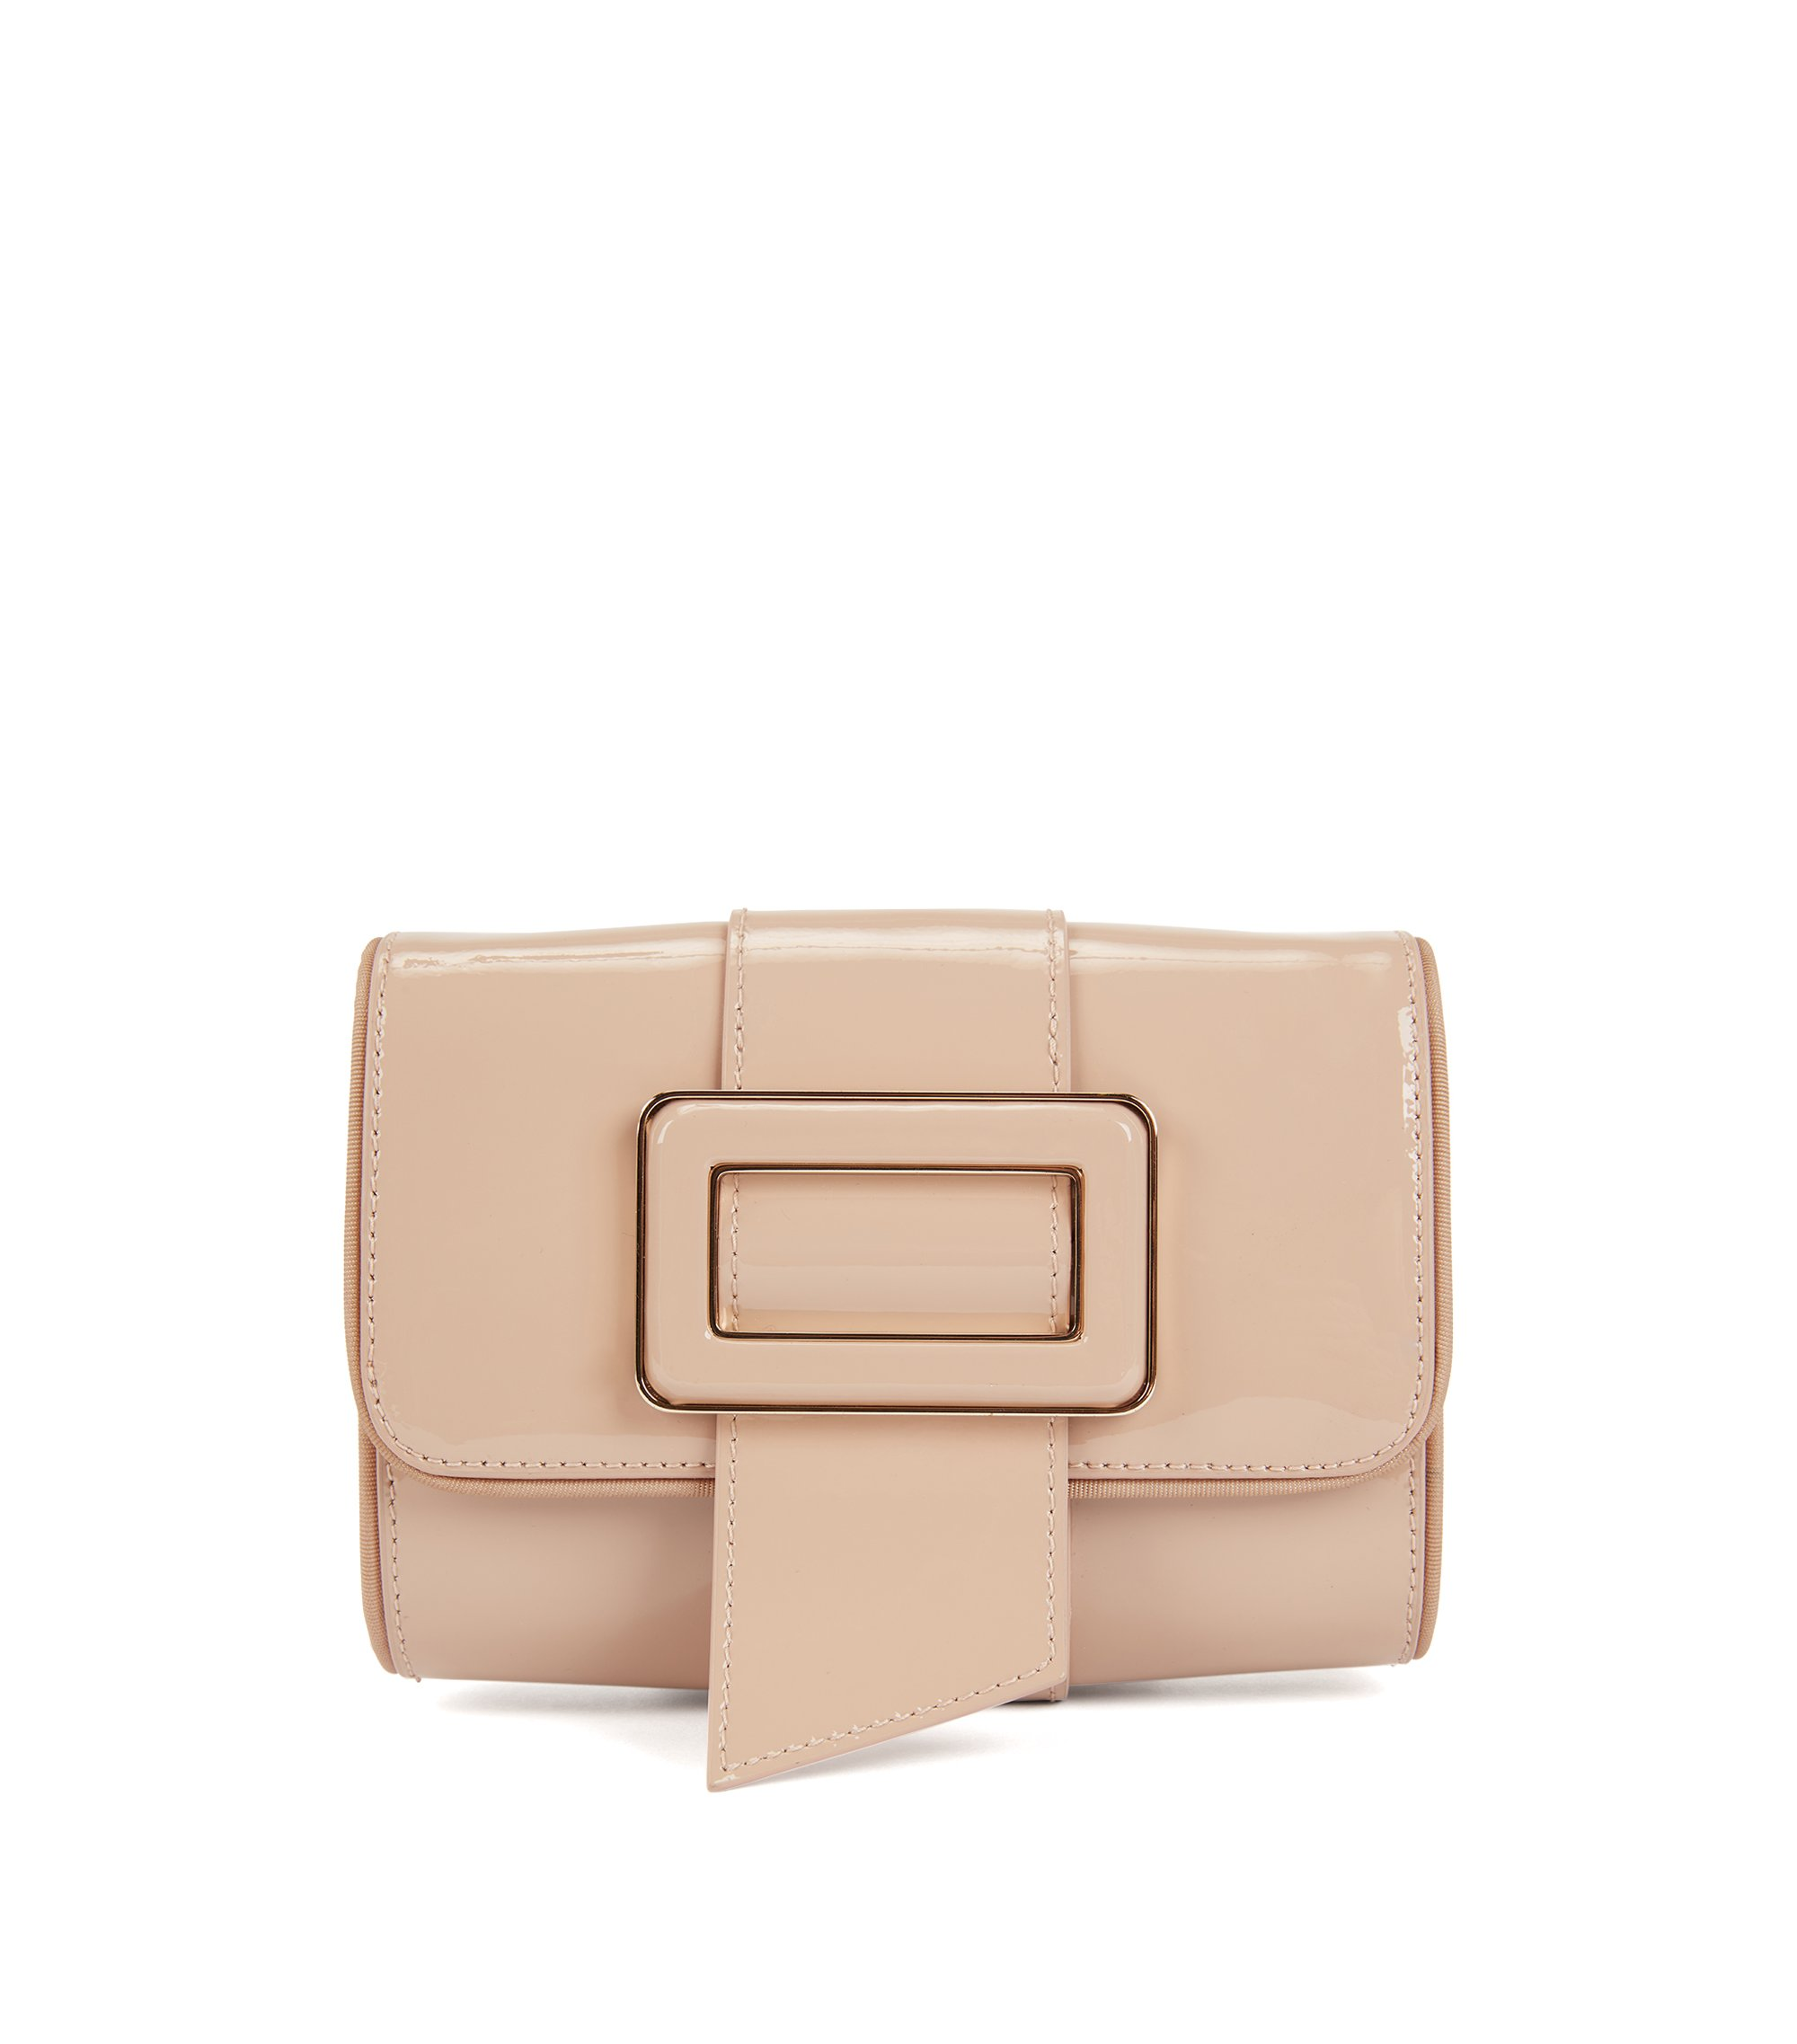 Patent-leather mini bag with statement buckle, Light Beige